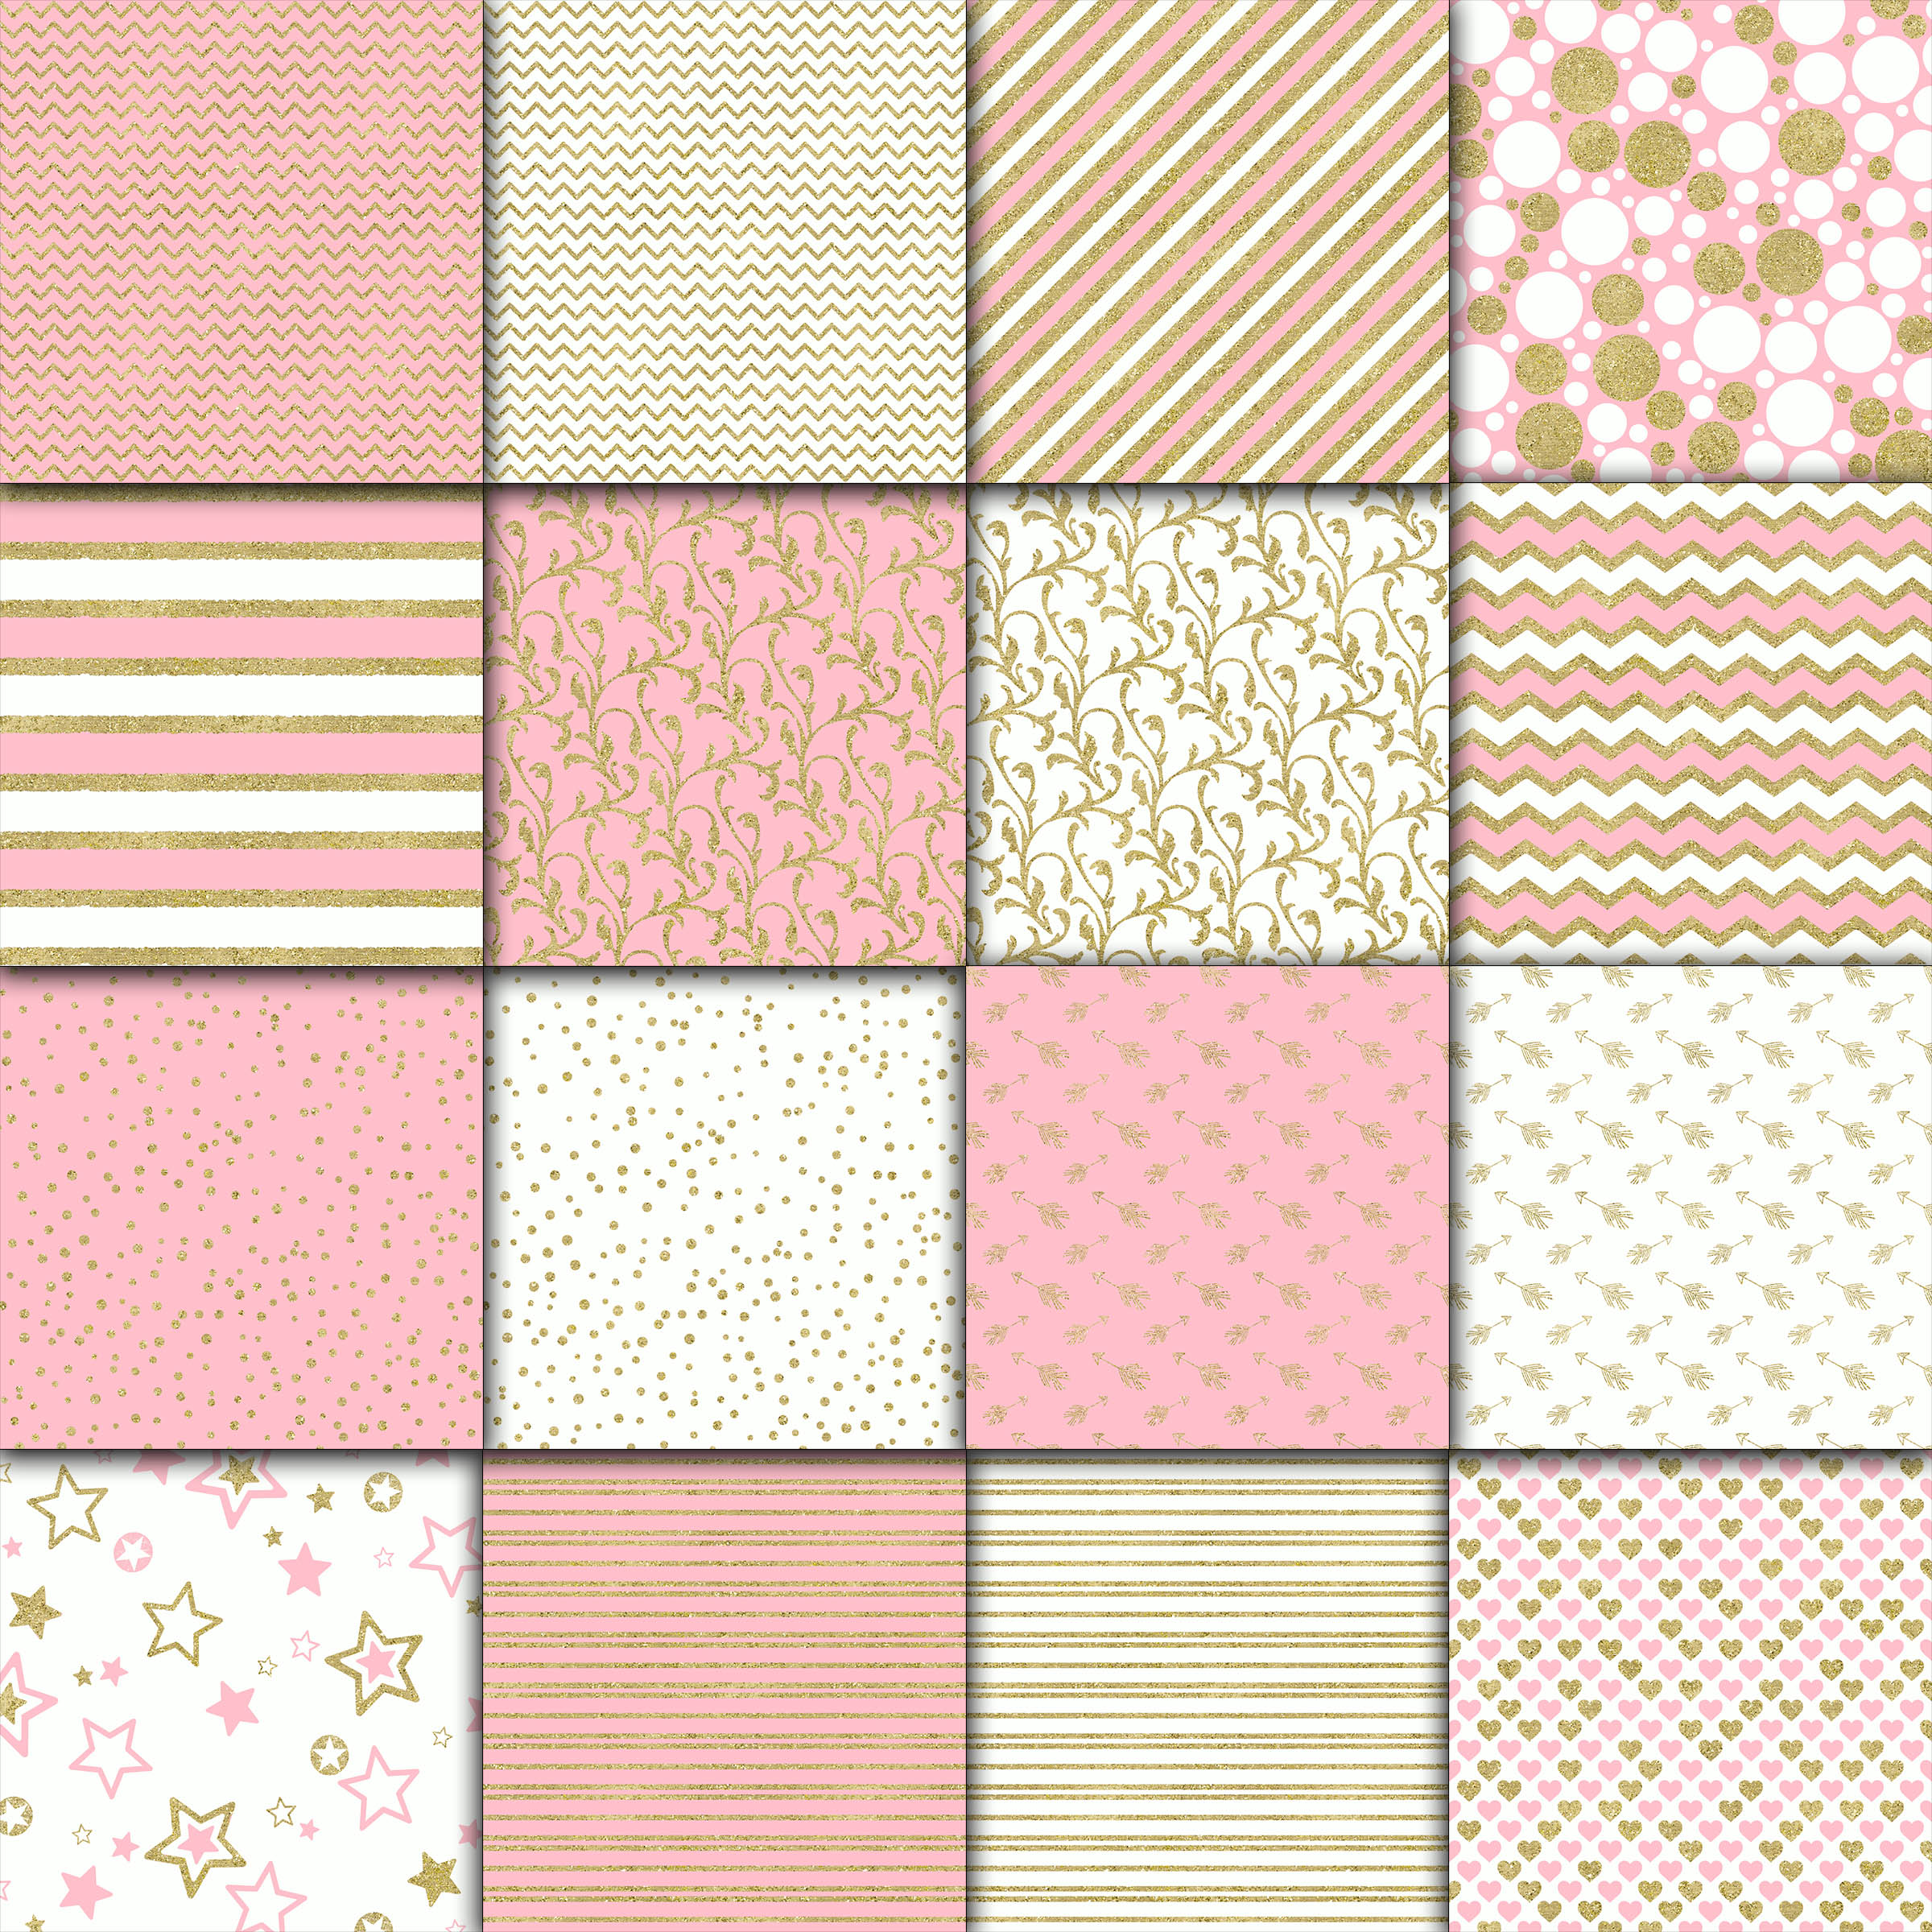 Print on Demand: Pink and Gold Digital Paper Graphic Backgrounds By oldmarketdesigns - Image 2